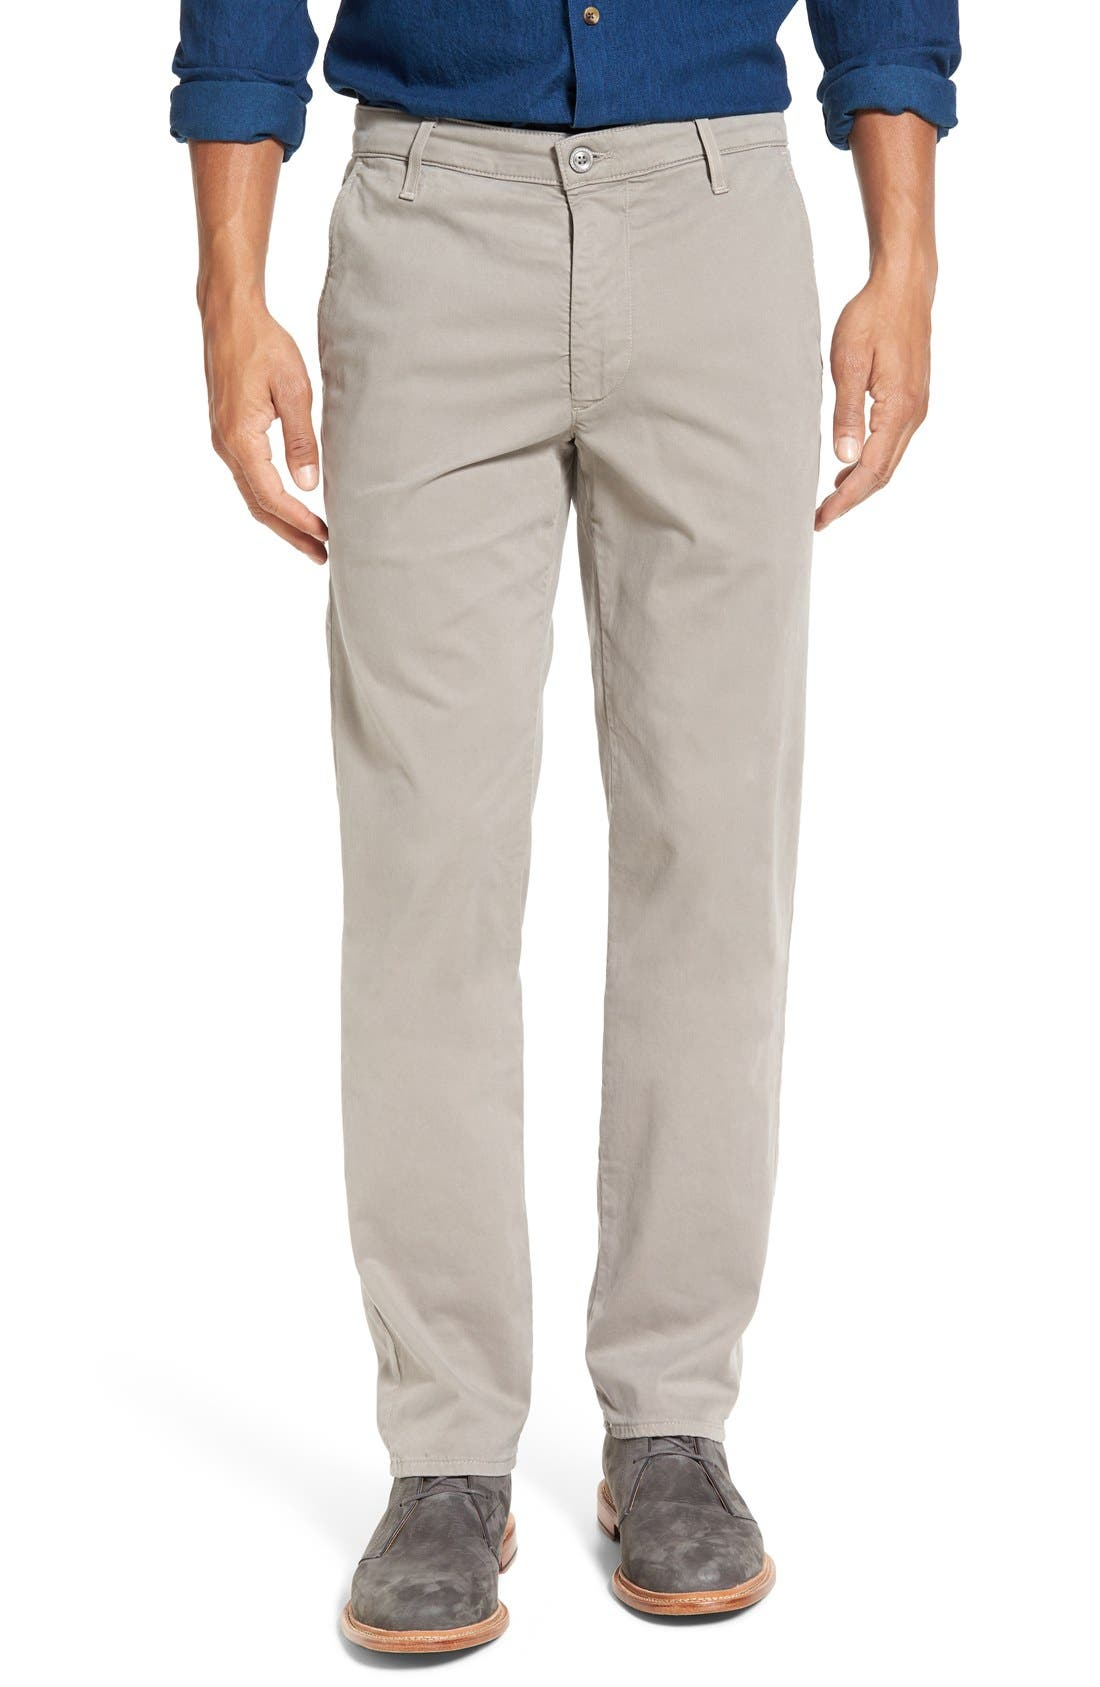 Alternate Image 1 Selected - AG 'The Lux' Tailored Straight Leg Chinos